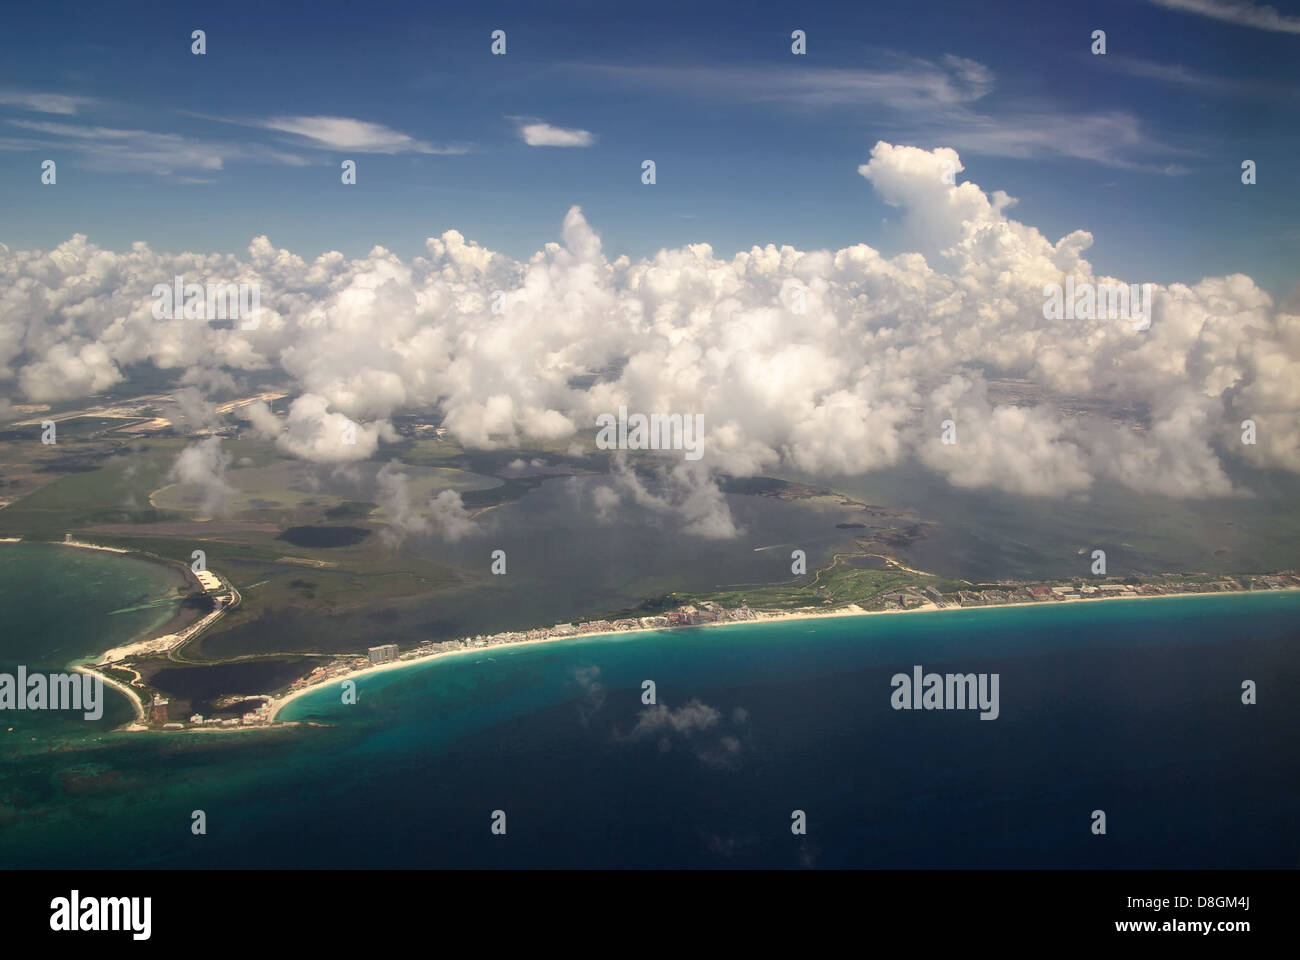 Cancun Beach - Stock Image